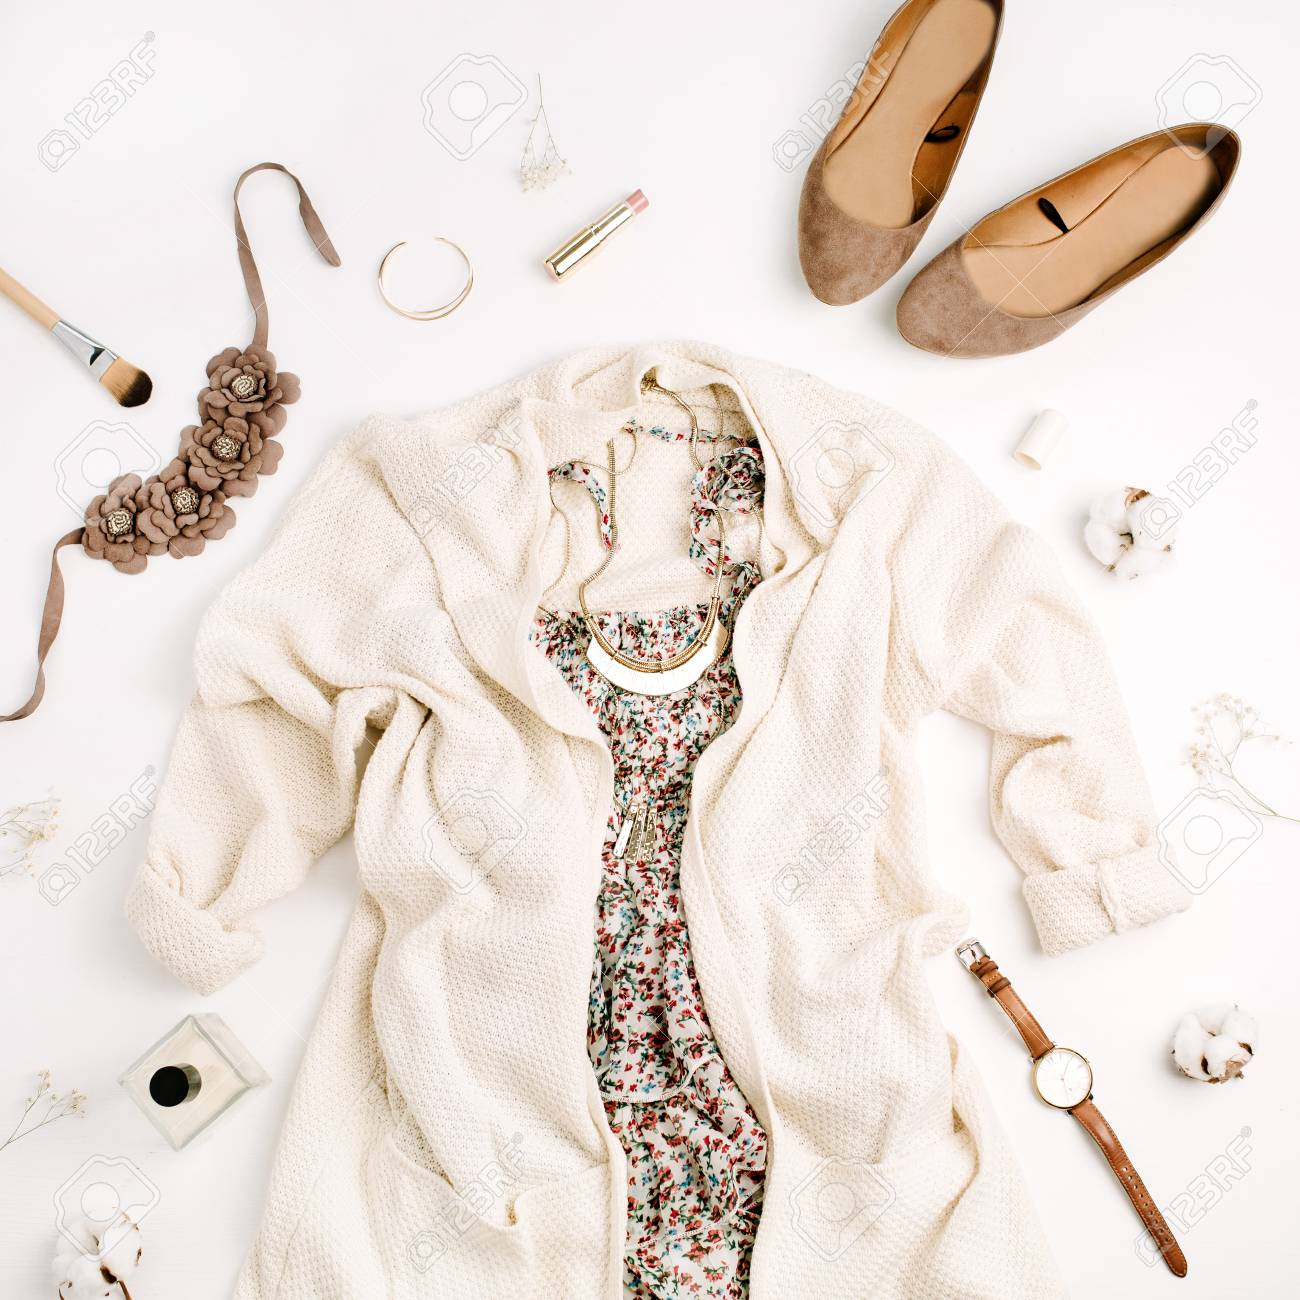 3ad8d0cde176 Flat Lay Fashion Concept. Female Clothes And Accessories: Sweater ...